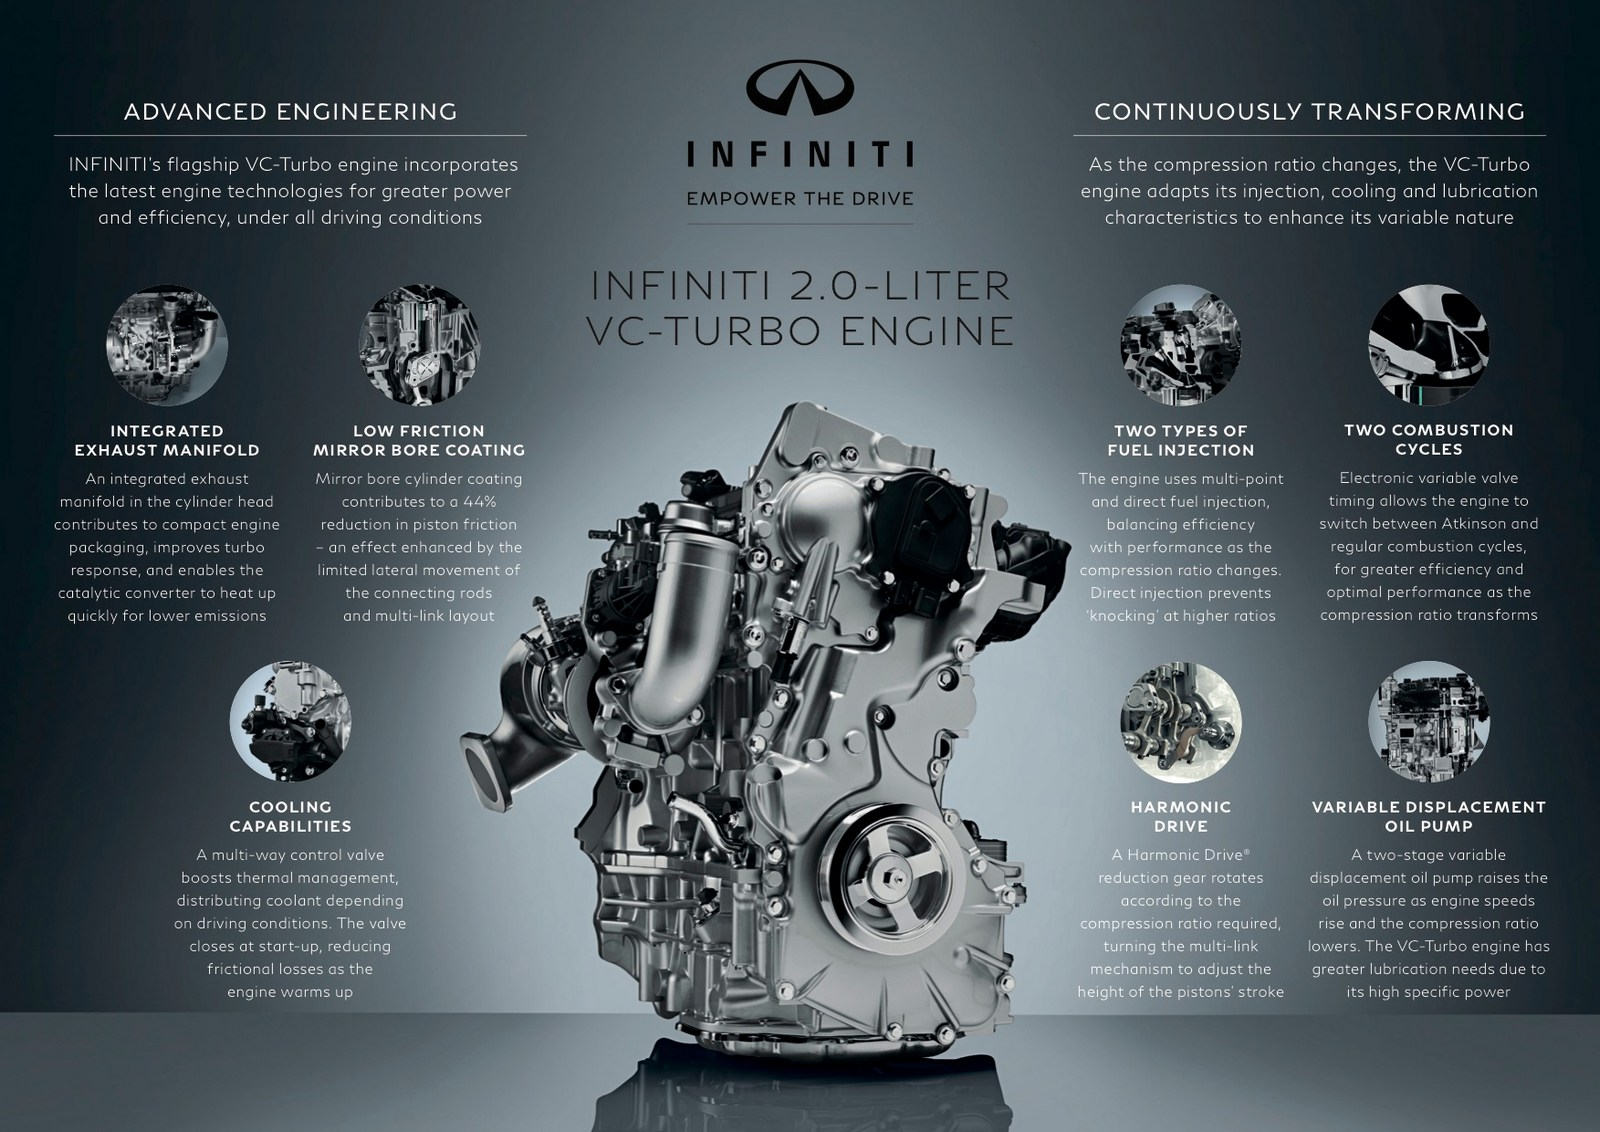 INFINITI's four-cylinder VC-Turbo promises to be one of the most advanced internal combustion engines ever created. With the ability to continuously transform, Infiniti's VC-Turbo technology uses an advanced multi-link system to seamlessly raise or lower the stroke of the pistons, detecting the car's driving condition and driver inputs, and instantly selecting the most suitable compression ratio.